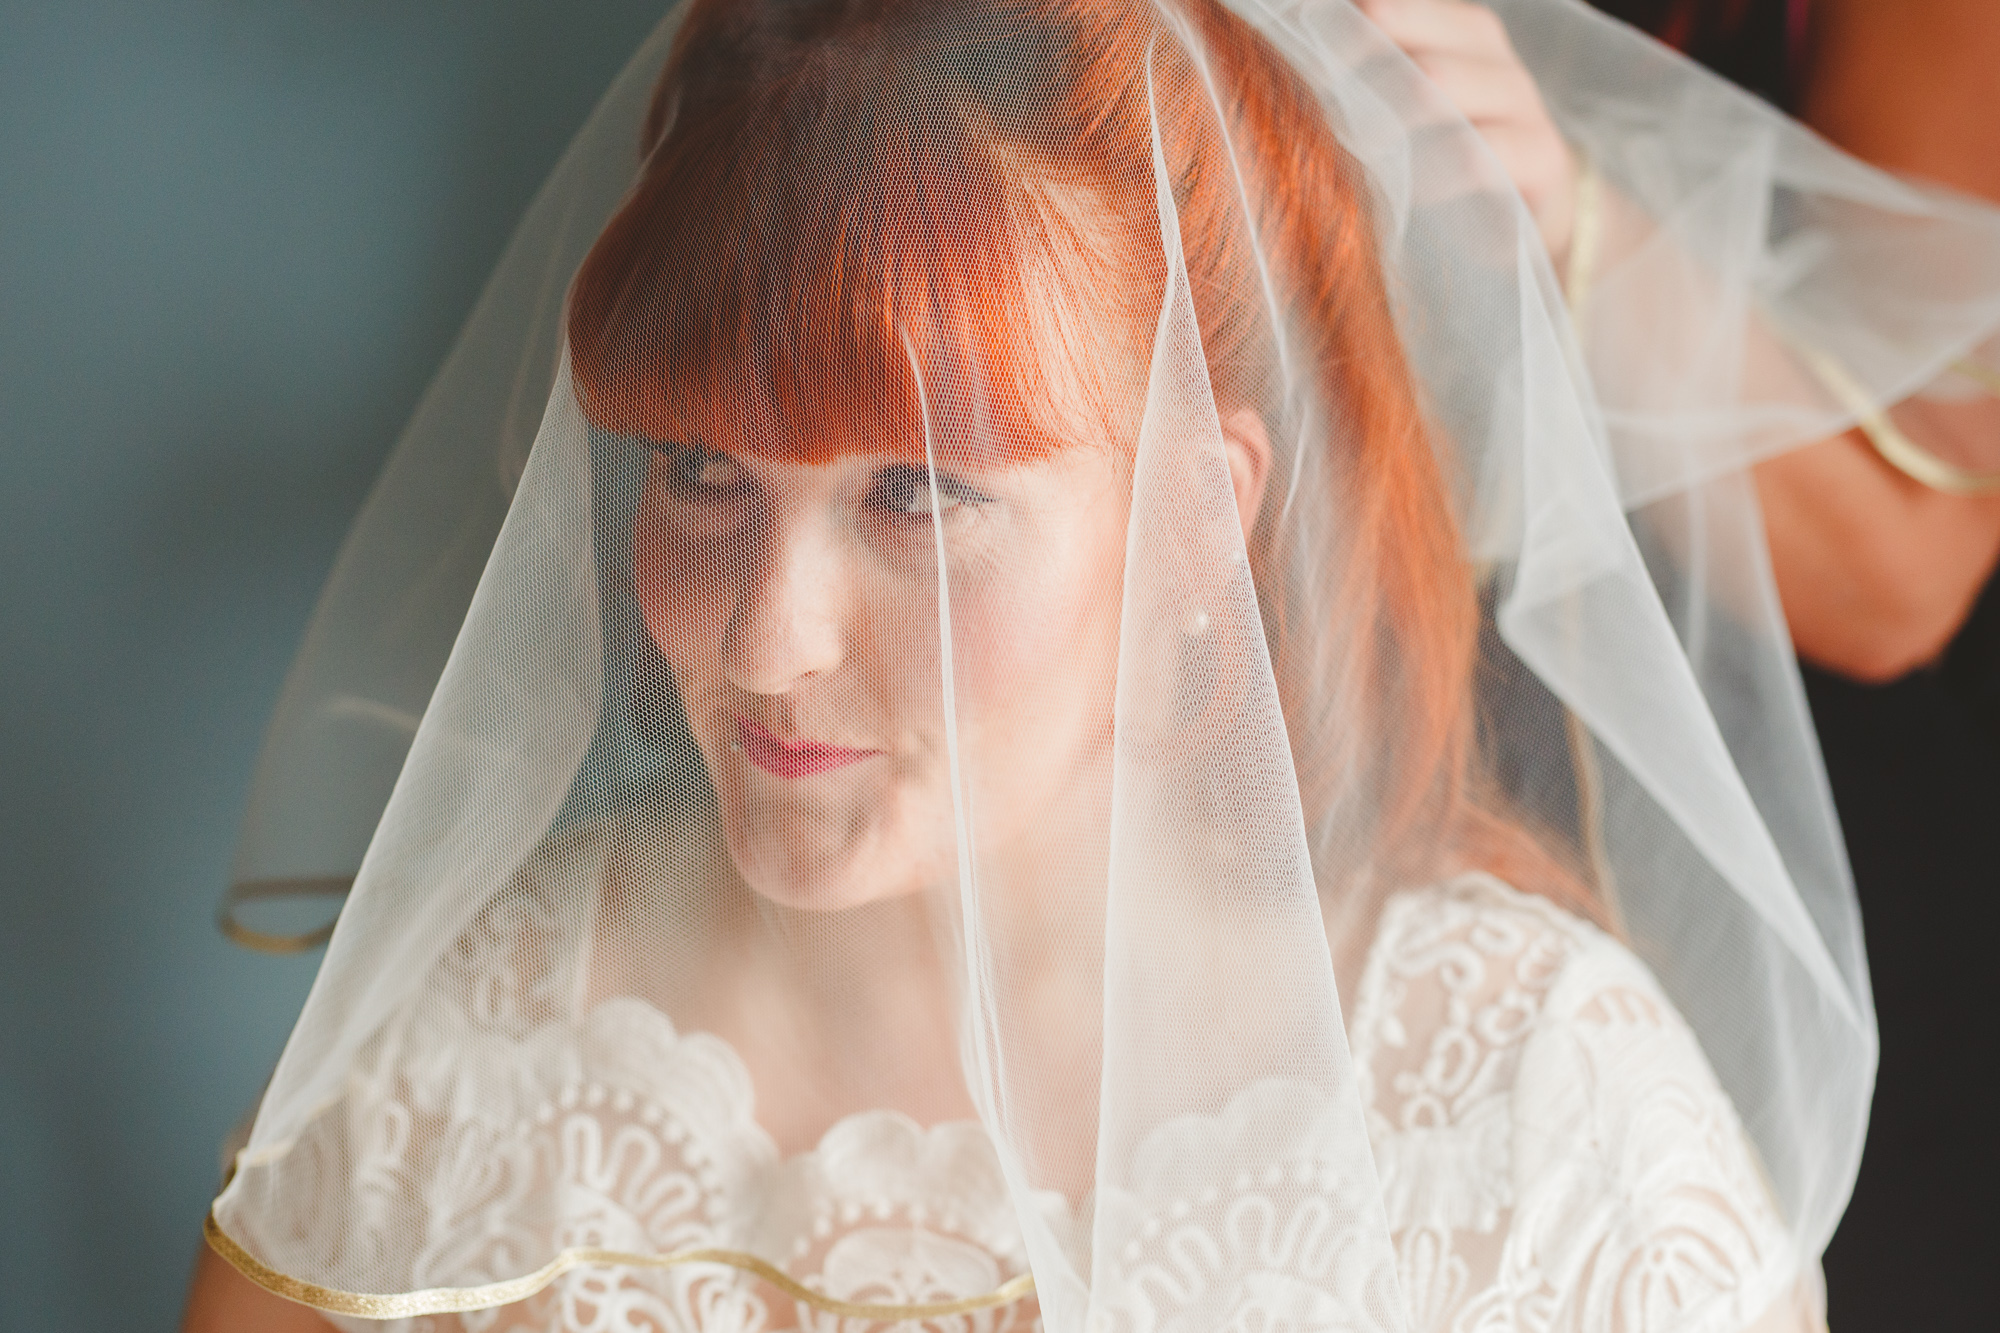 alternative-wedding-photographer-nottingham-camera-hannah-1.jpg